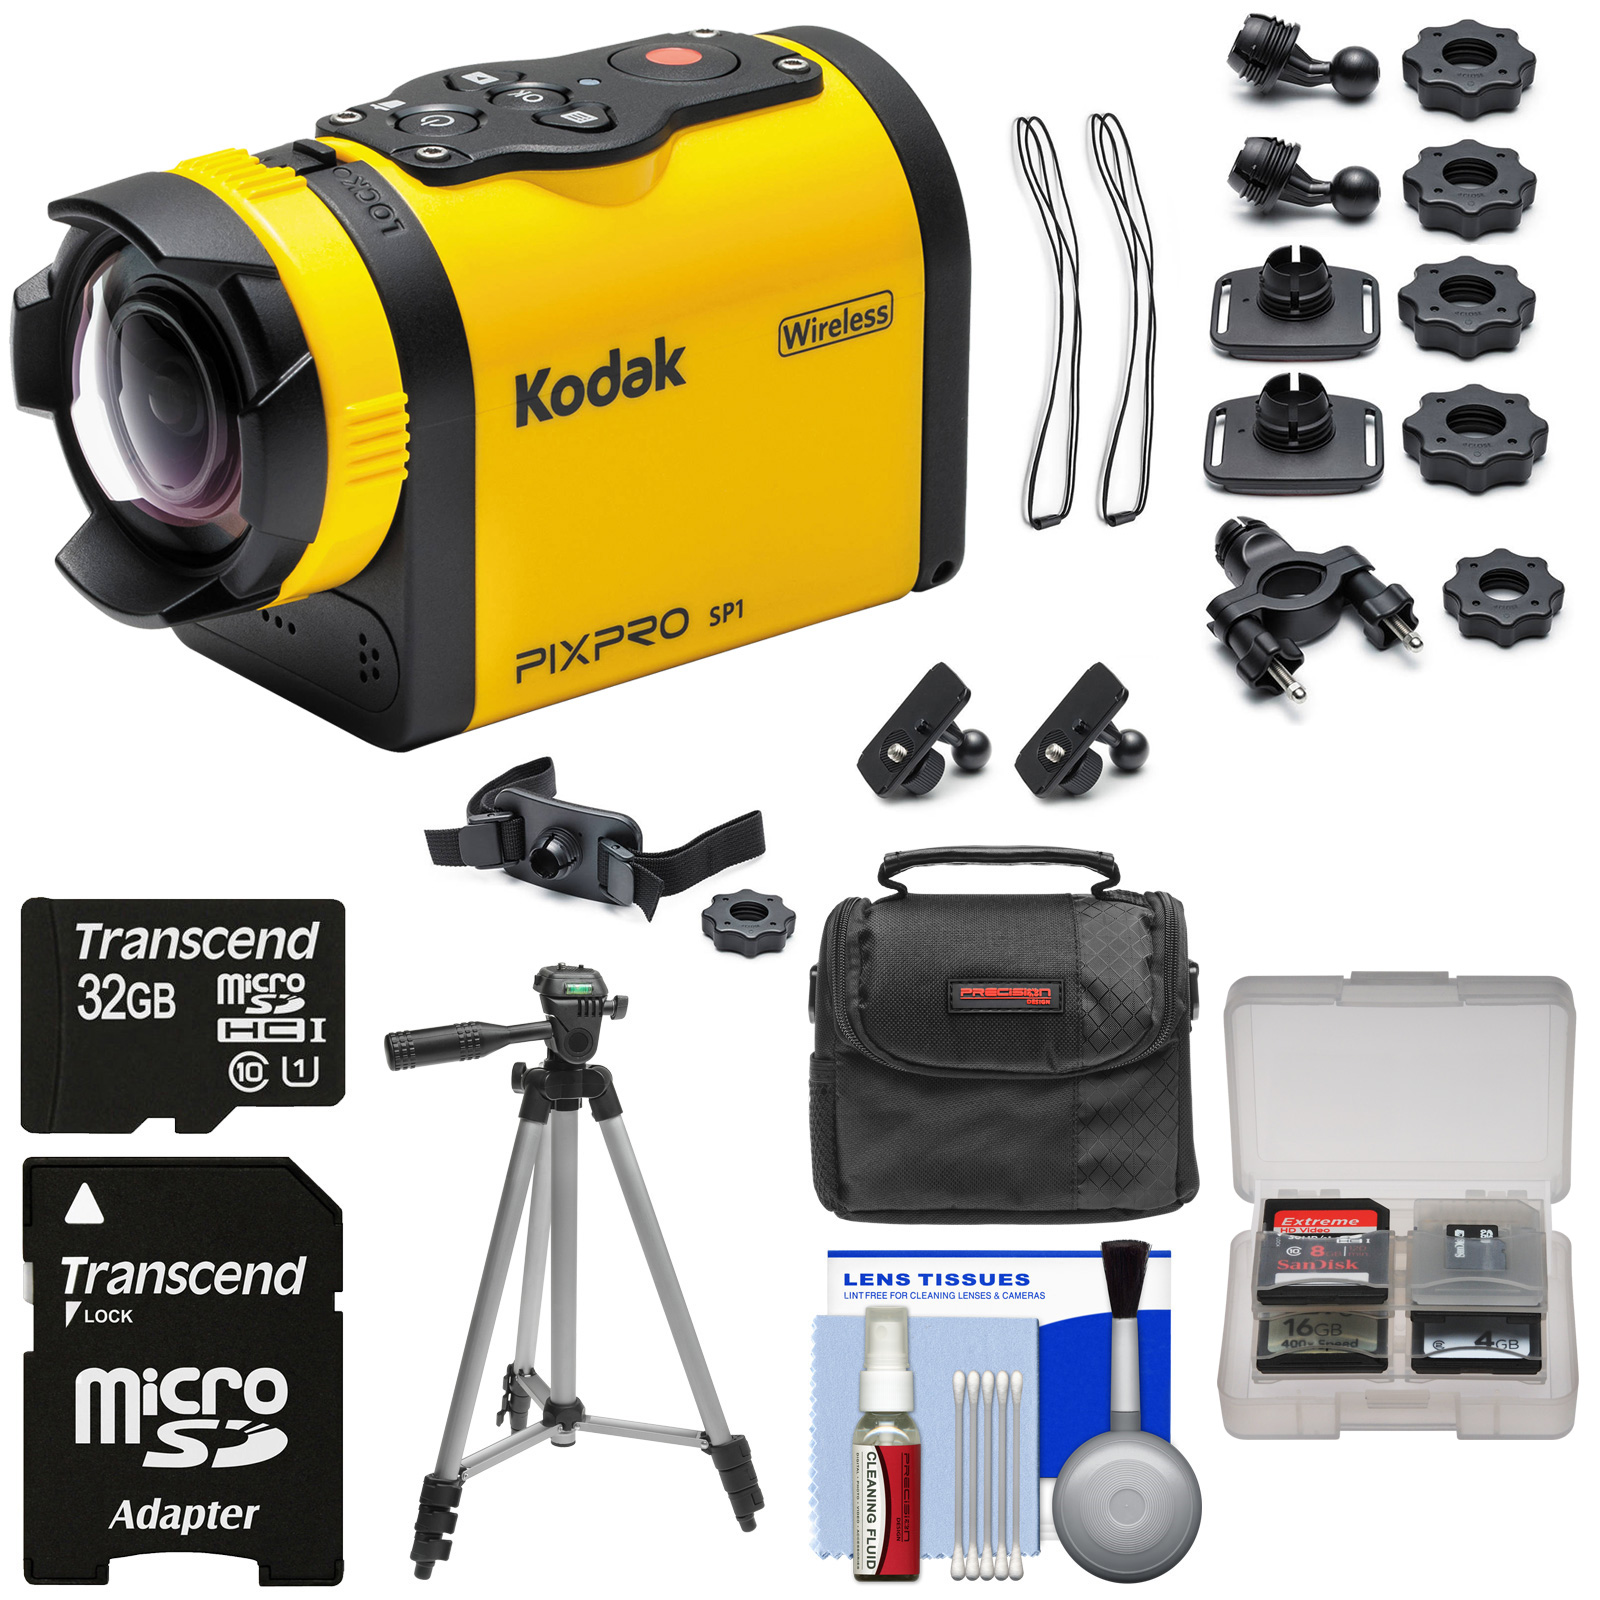 Kodak PixPro SP1 Video Action Camera Camcorder - Explorer Pack with 32GB Card + Battery + Case + Tripod + Kit